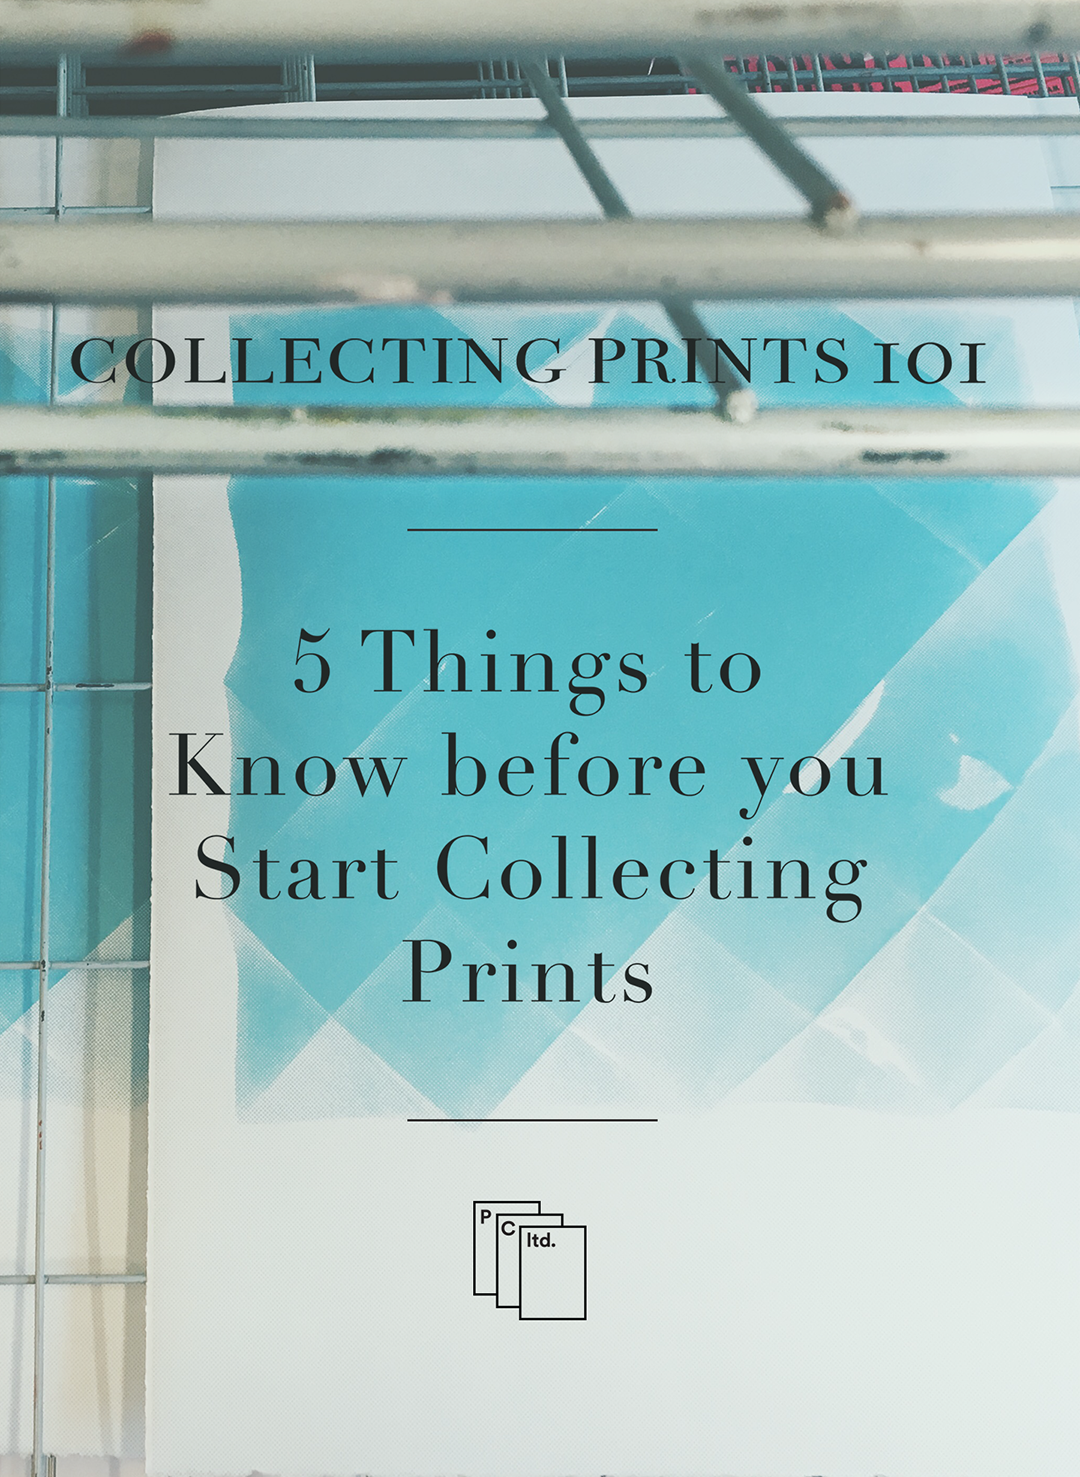 Five Things to Know Before you Start Collecting Prints from the Print Club Ltd. Journal